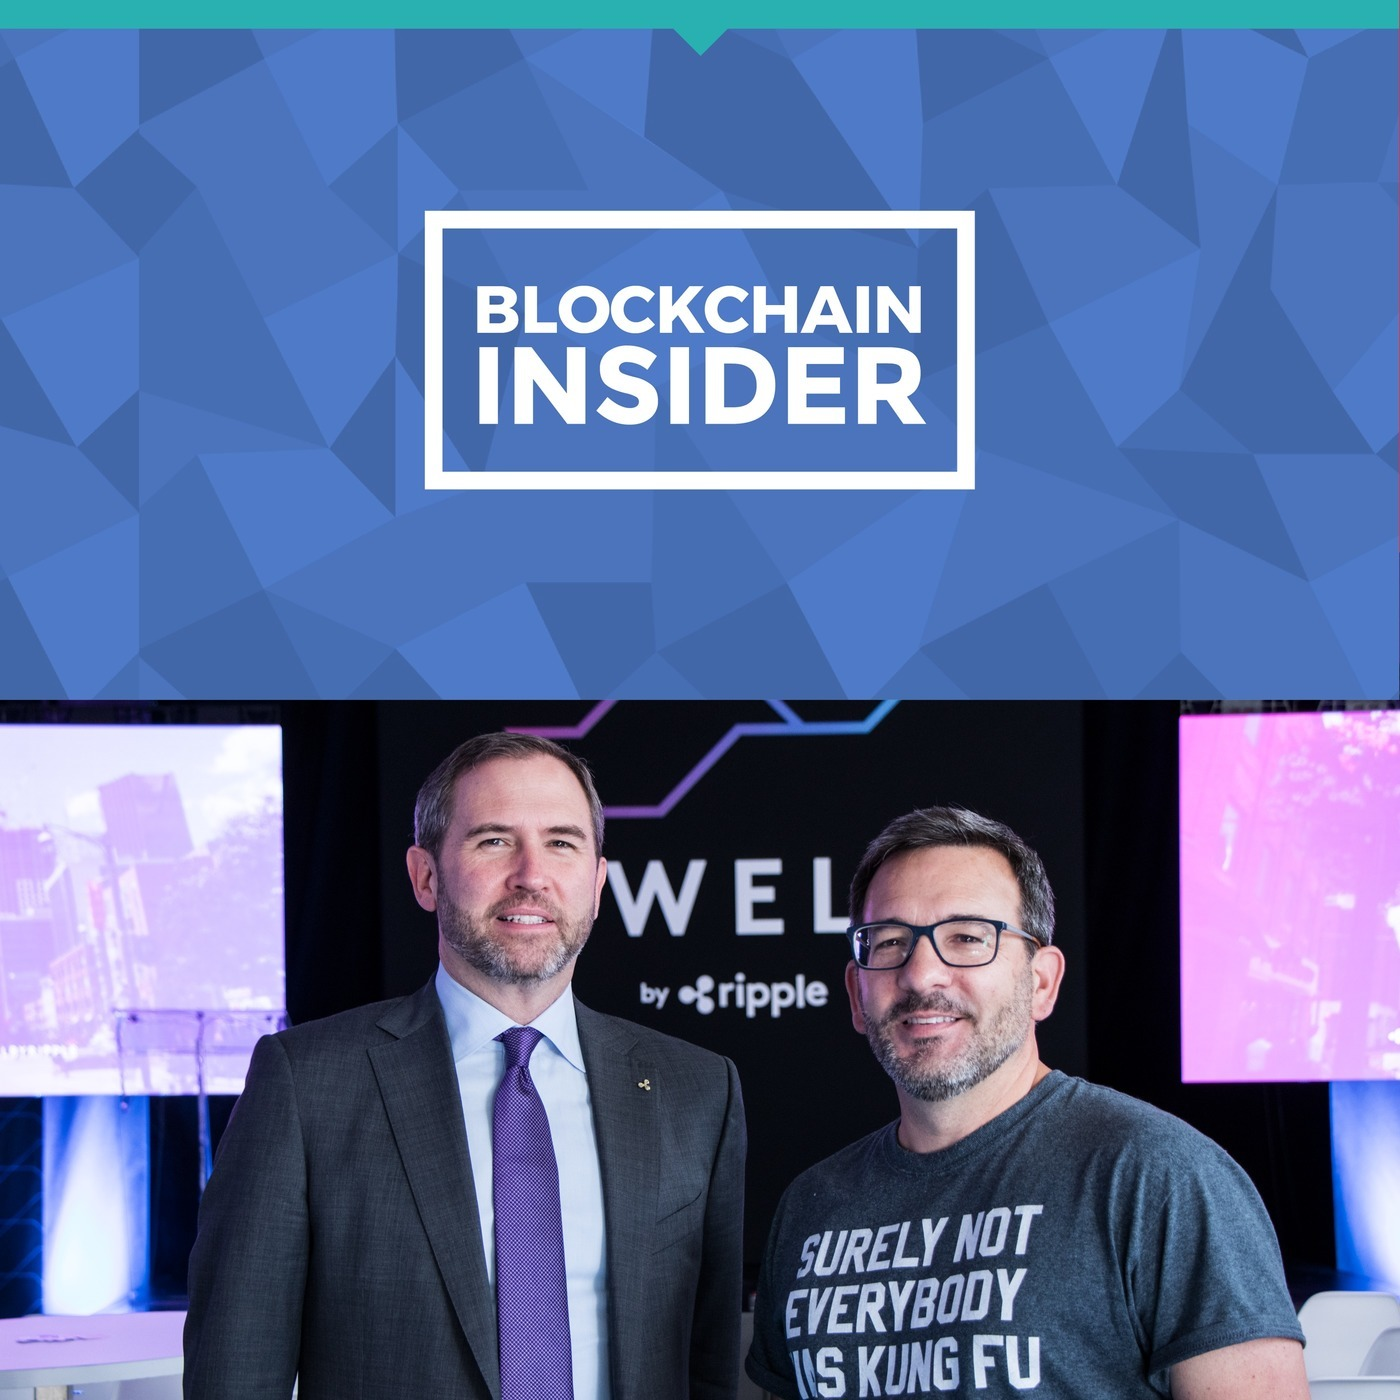 Ep. 17. Bitcoin price explodes, ICOs implode and CEO of Ripple Interview